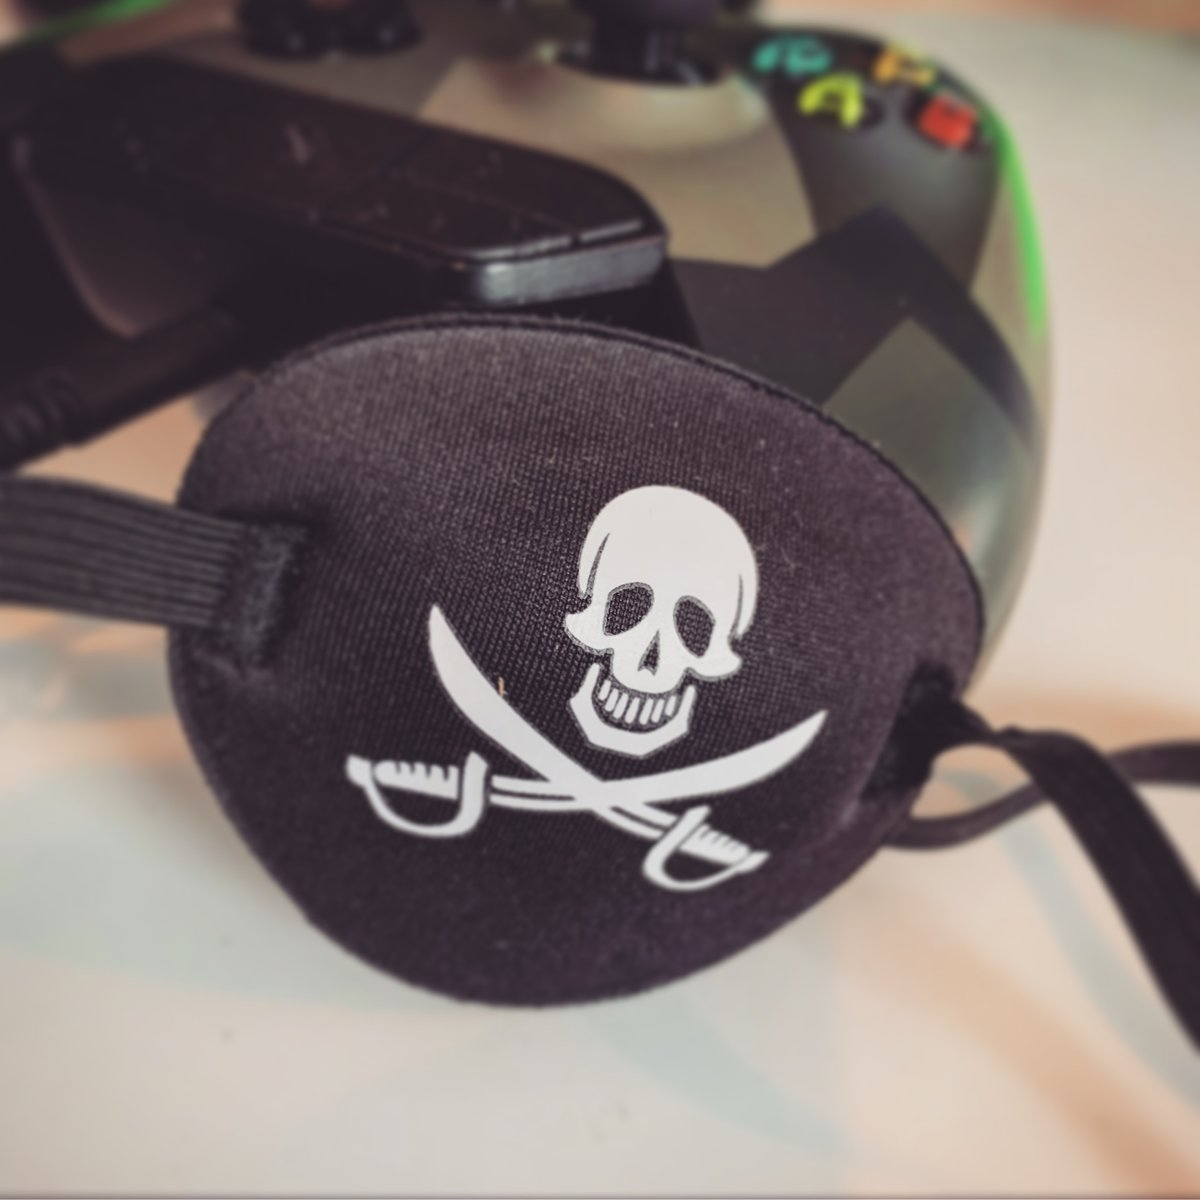 We LOVE Sea of Thieves we will be streaming tonight on Twitch - Checkout http://www.twitch.tv/hairyfacegamers  #gaming #gamingmemes #gaminglife #GamingPosts #gamingsetup #Gamingmeme #gamingpc #gamingcommunity #gamingroom #gamingrig #gamingislife #gamingnews #gaminggearpic.twitter.com/ojY3hNoQtB